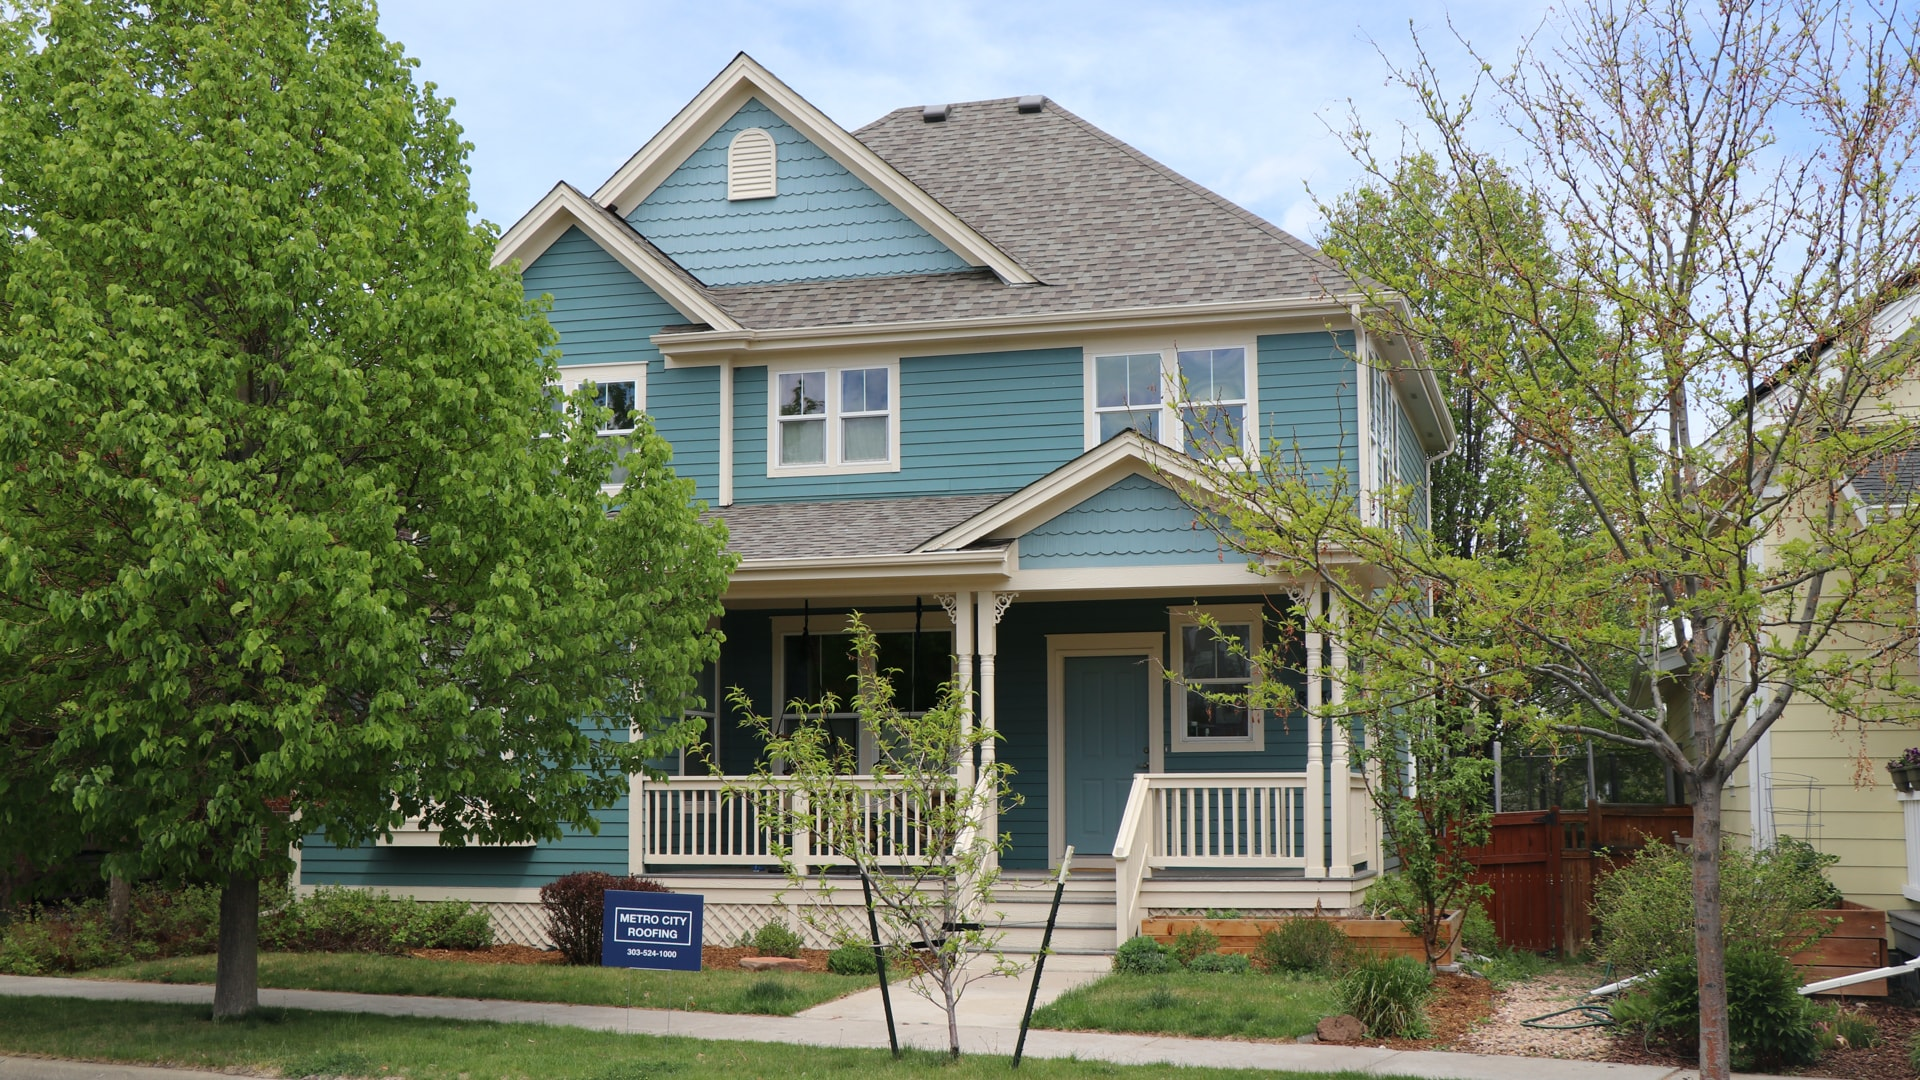 Green, Victorian style home in the Central Park neighborhood of Denver, Colorado with blue Metro City Roofing sign in the foreground